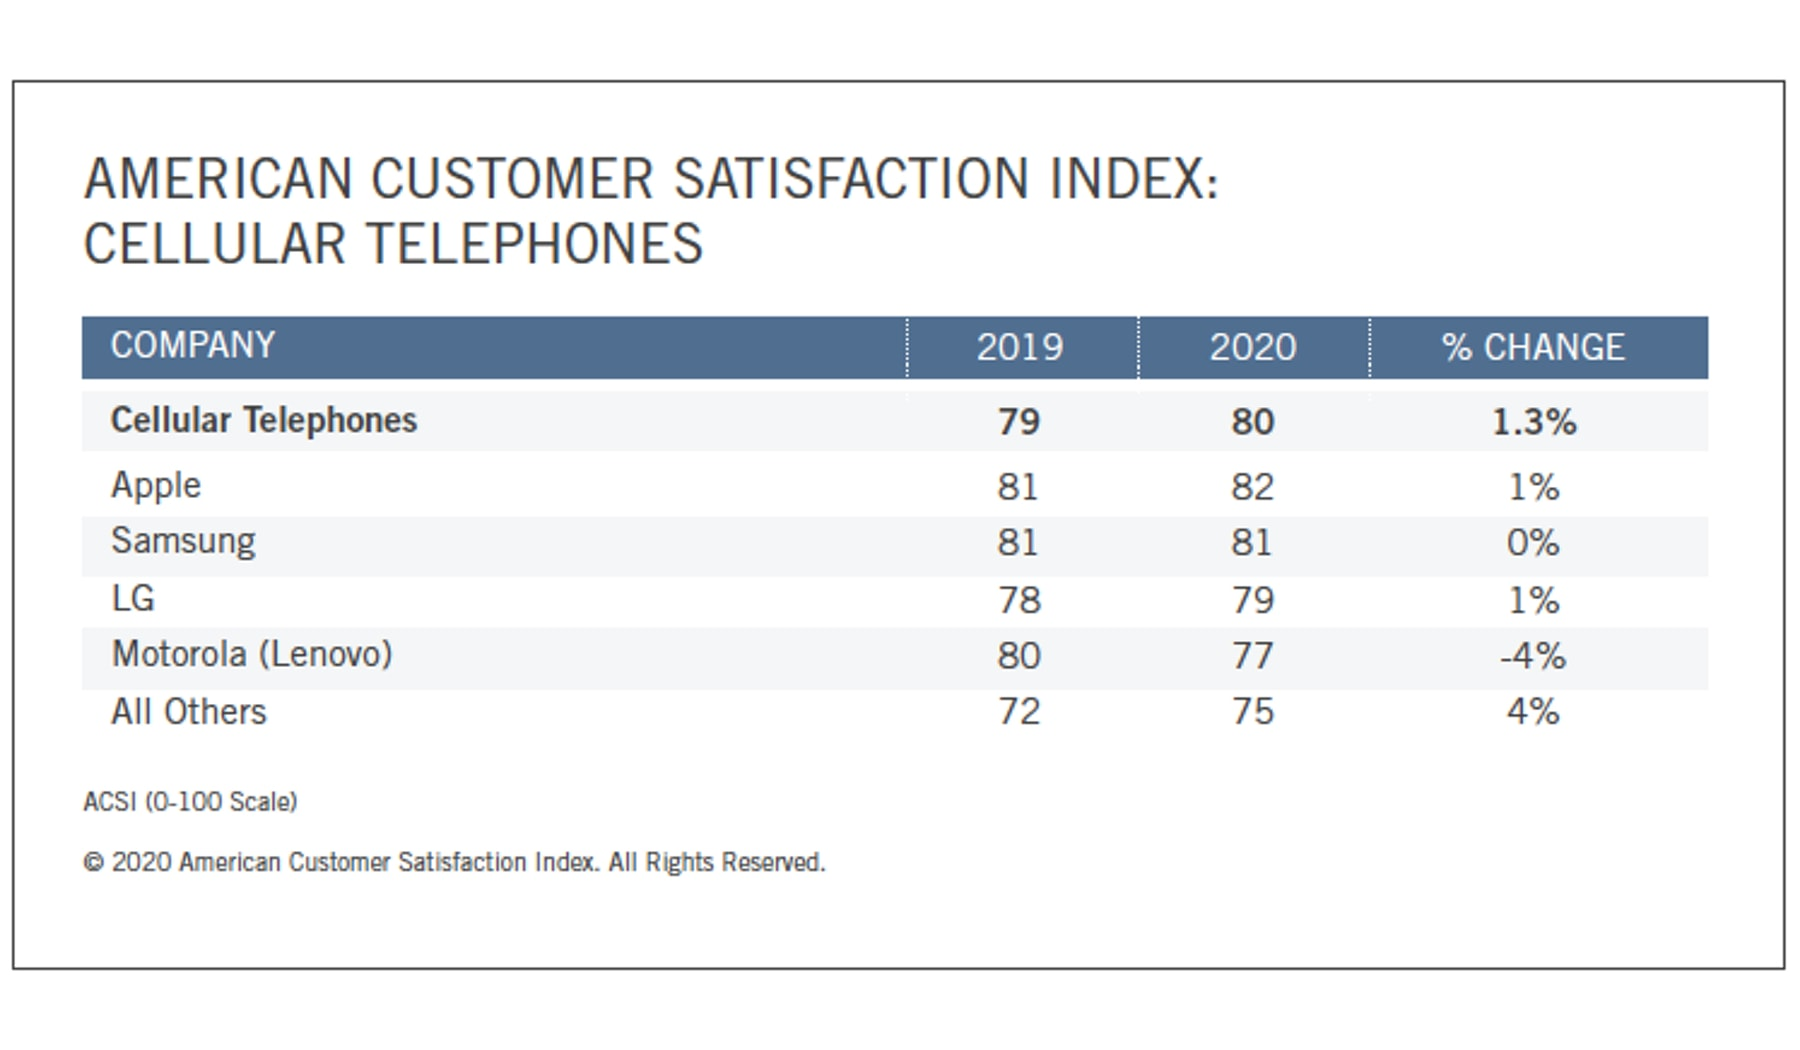 iPhones edge out Samsung mobile phones among customer satisfaction